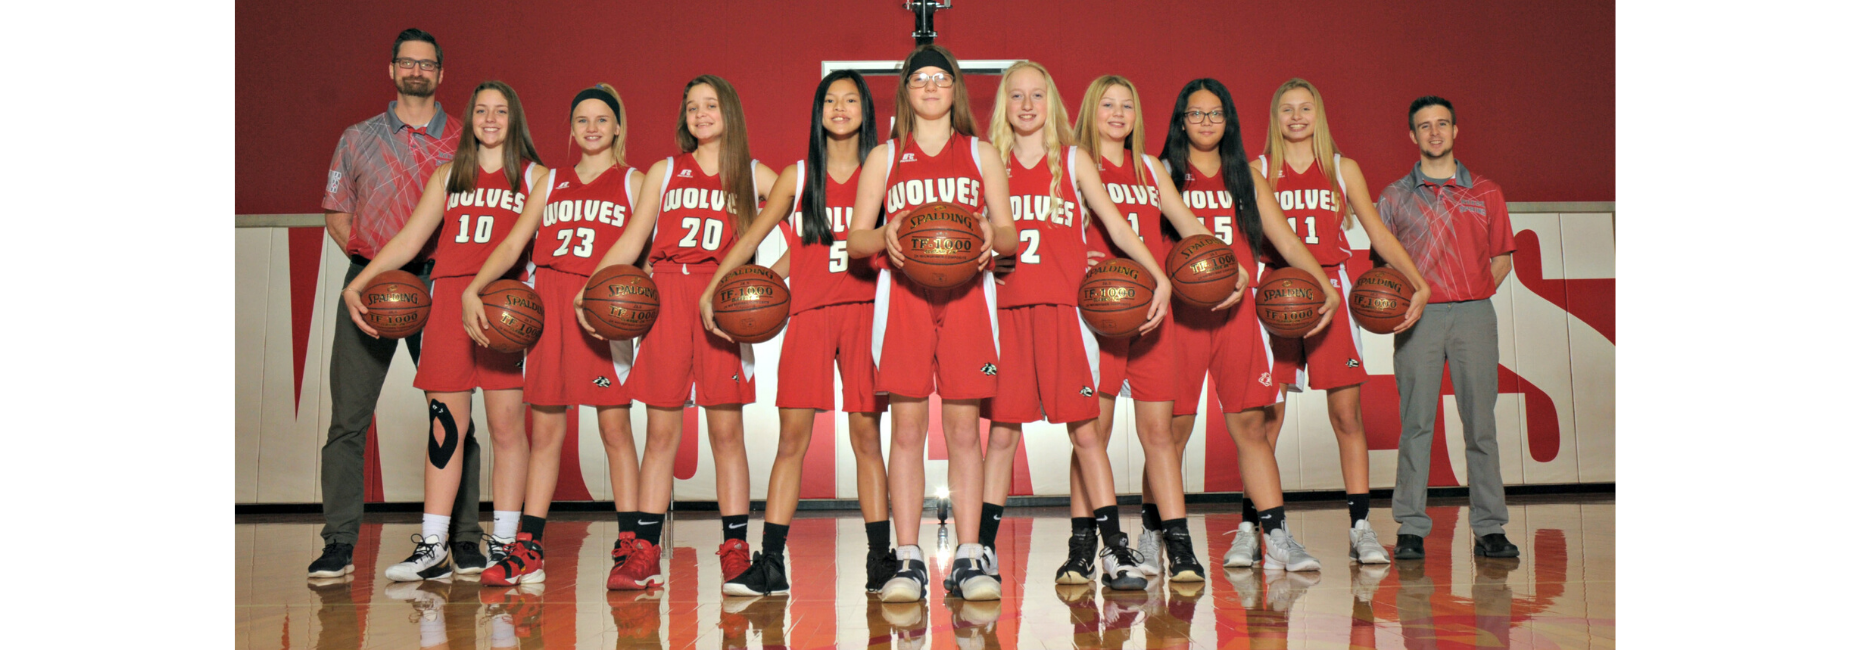 picture of rsms girls basketball team